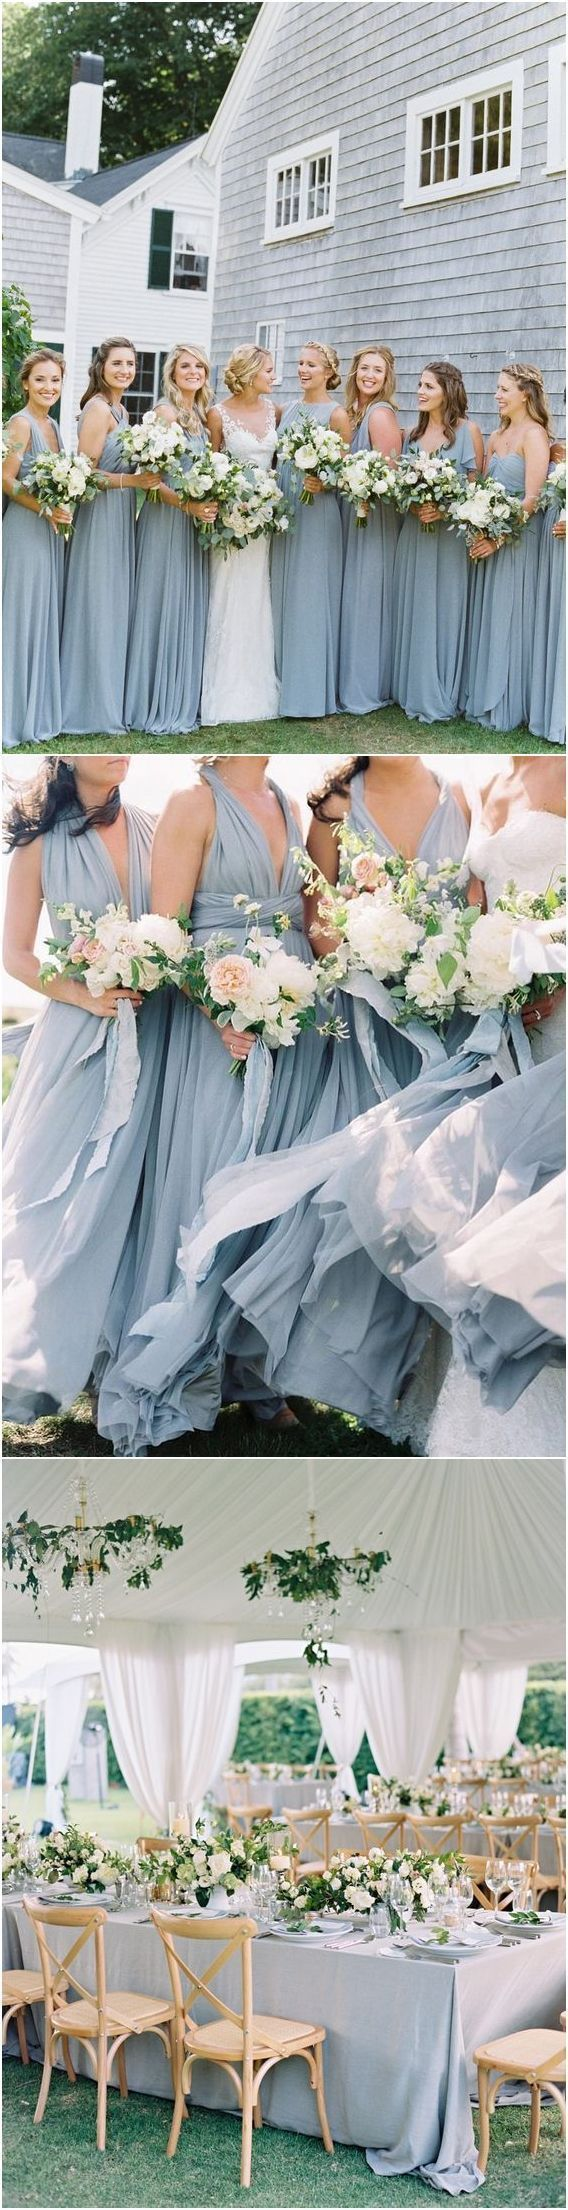 Dusty blue bridesmaid dresses and cream greenery wedding color palette idea / http://www.deerpearlflowers.com/dusty-blue-wedding-color-combos/ #weddingcolors #weddingideas #bluewedding #dustyblue #bridesmaiddresses